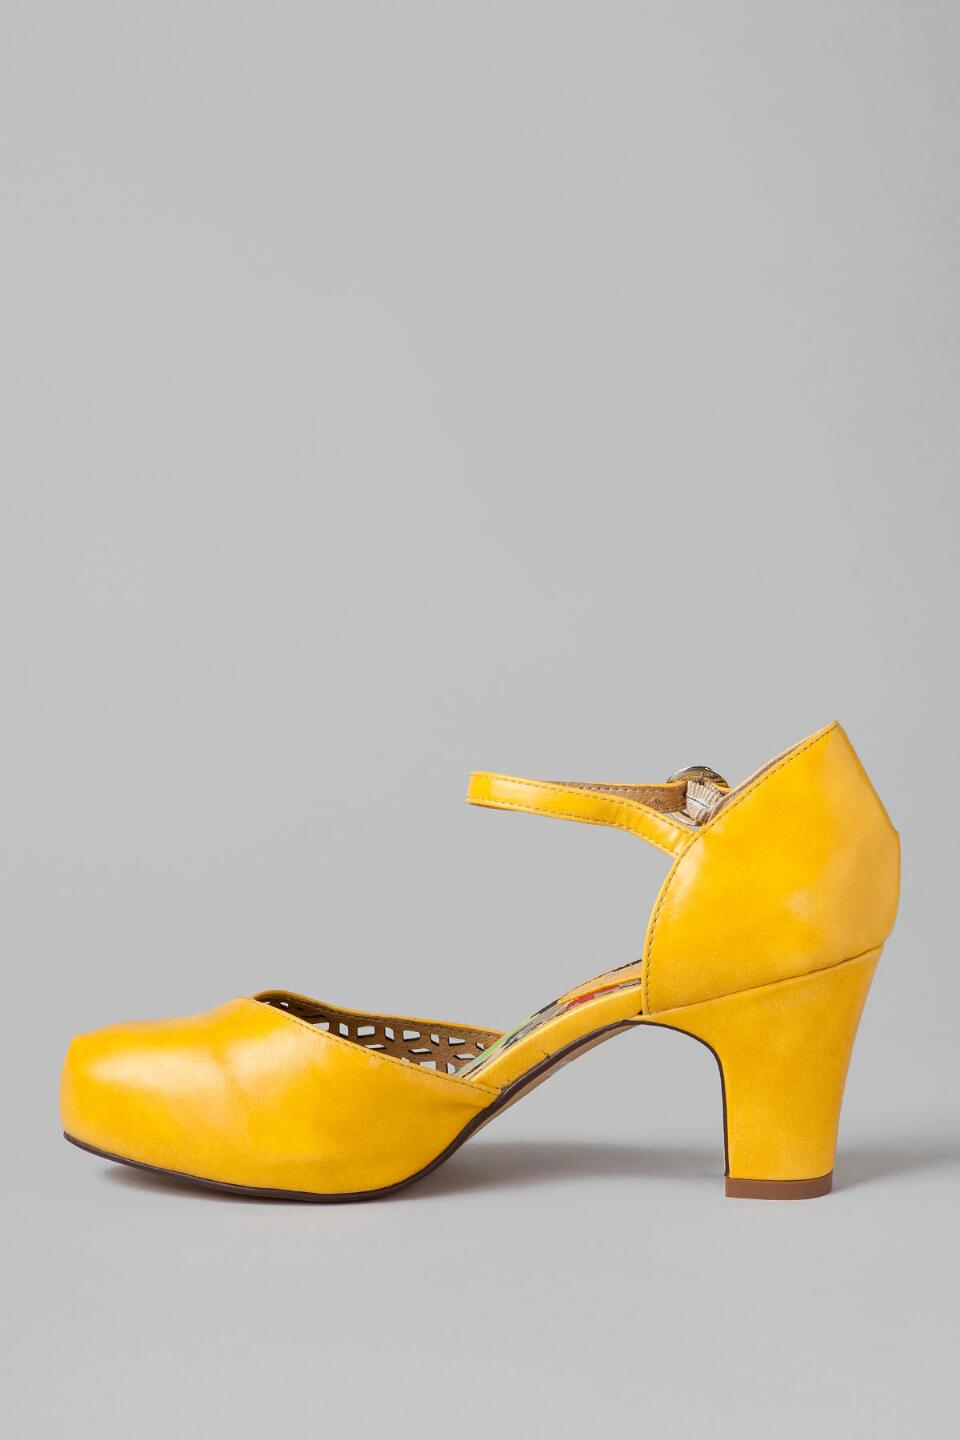 Chelsea Crew Shoes, Turk Cutout Pump in Yellow-  yllw-clleft